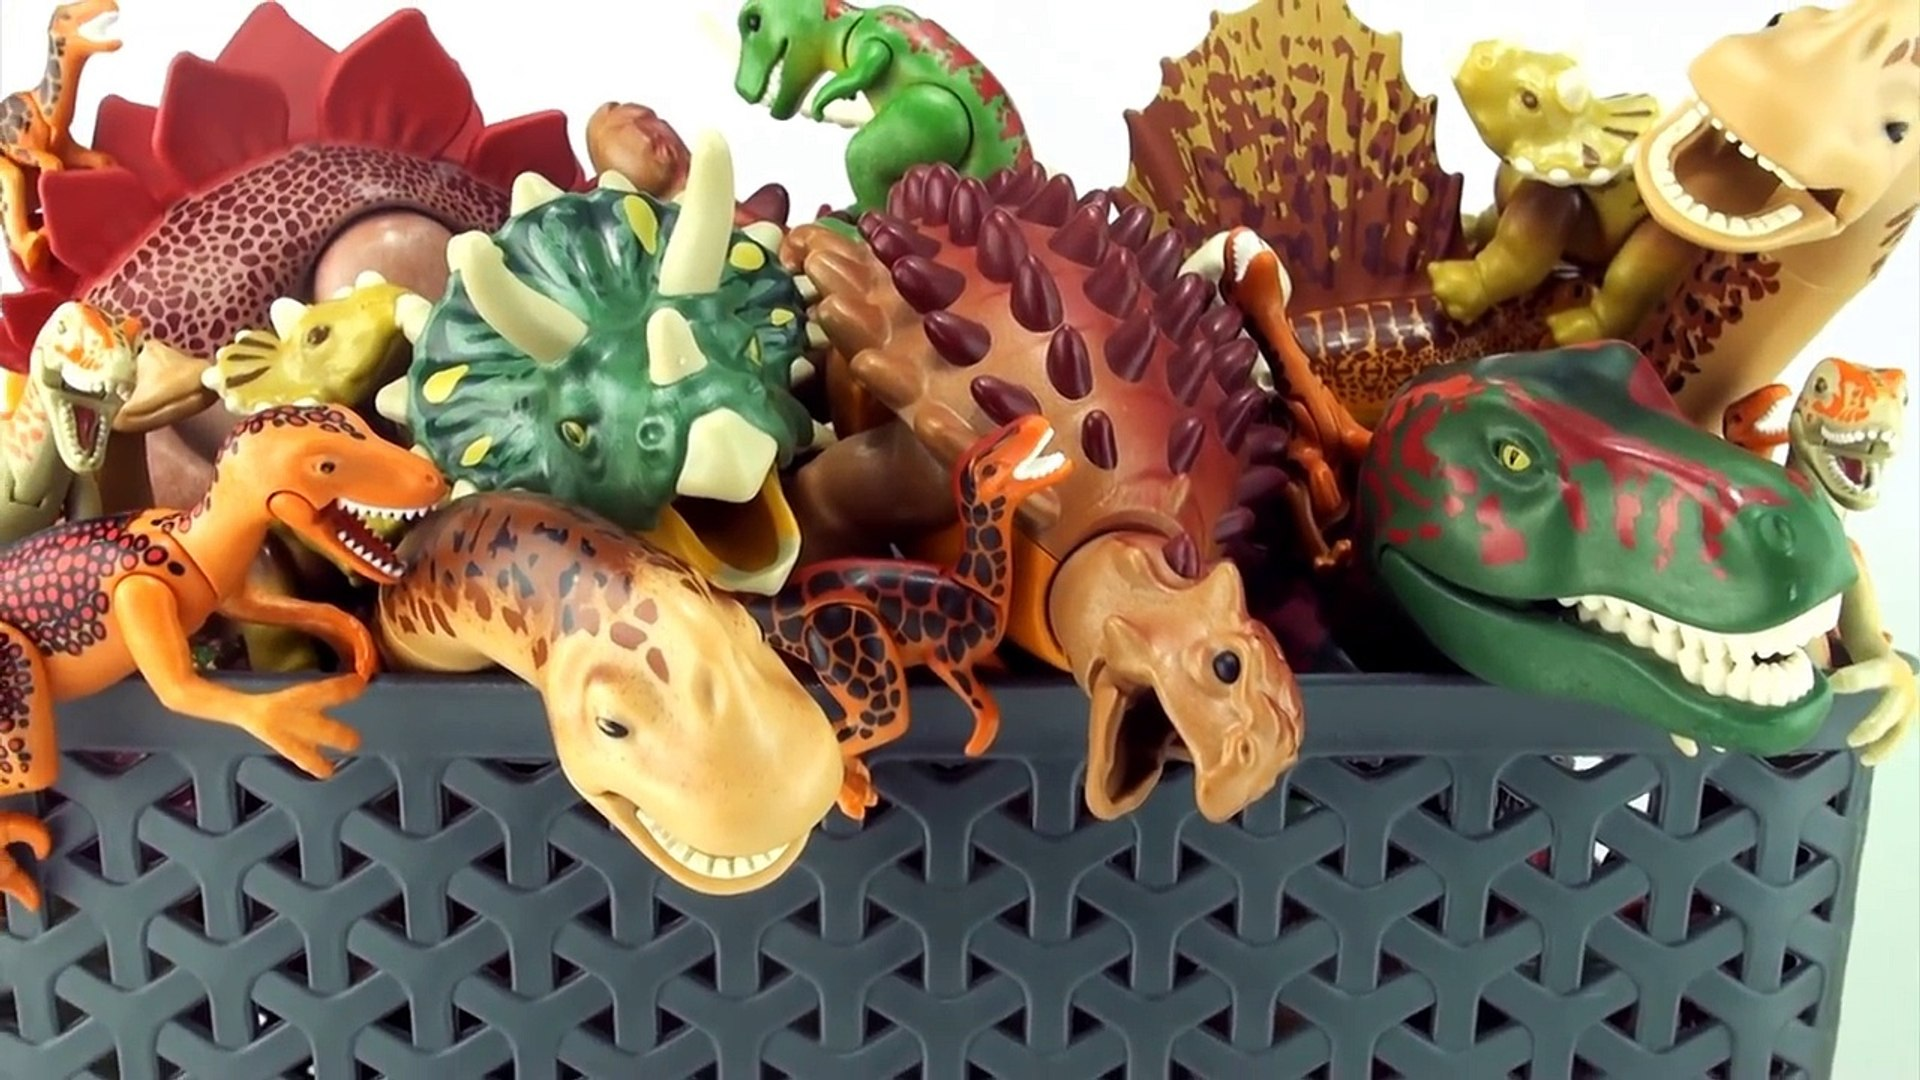 Box of Dinosaurs Playmobil Collection - Tyrannosaurus, Triceratops in the dinosaur toy box